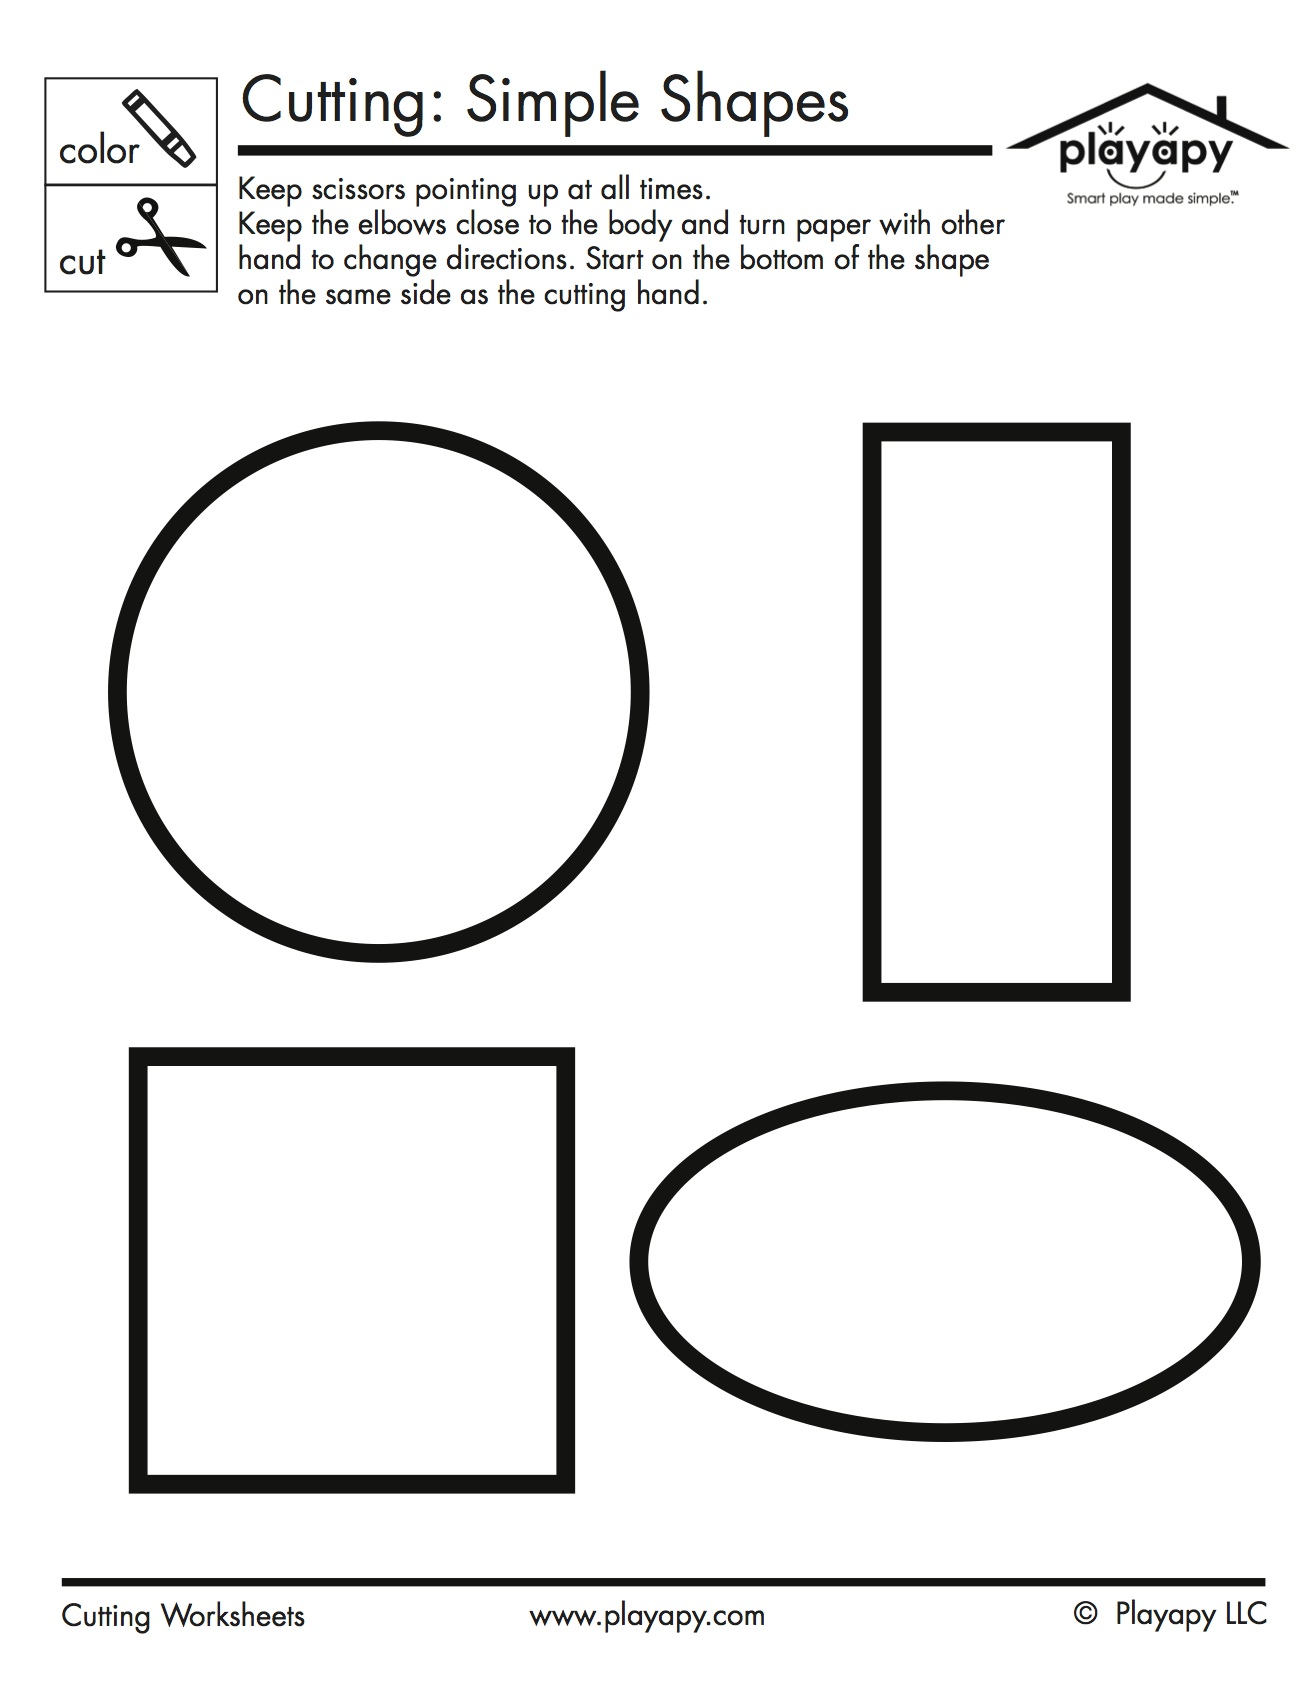 Practice Printables Set Playapy Playful Solutions